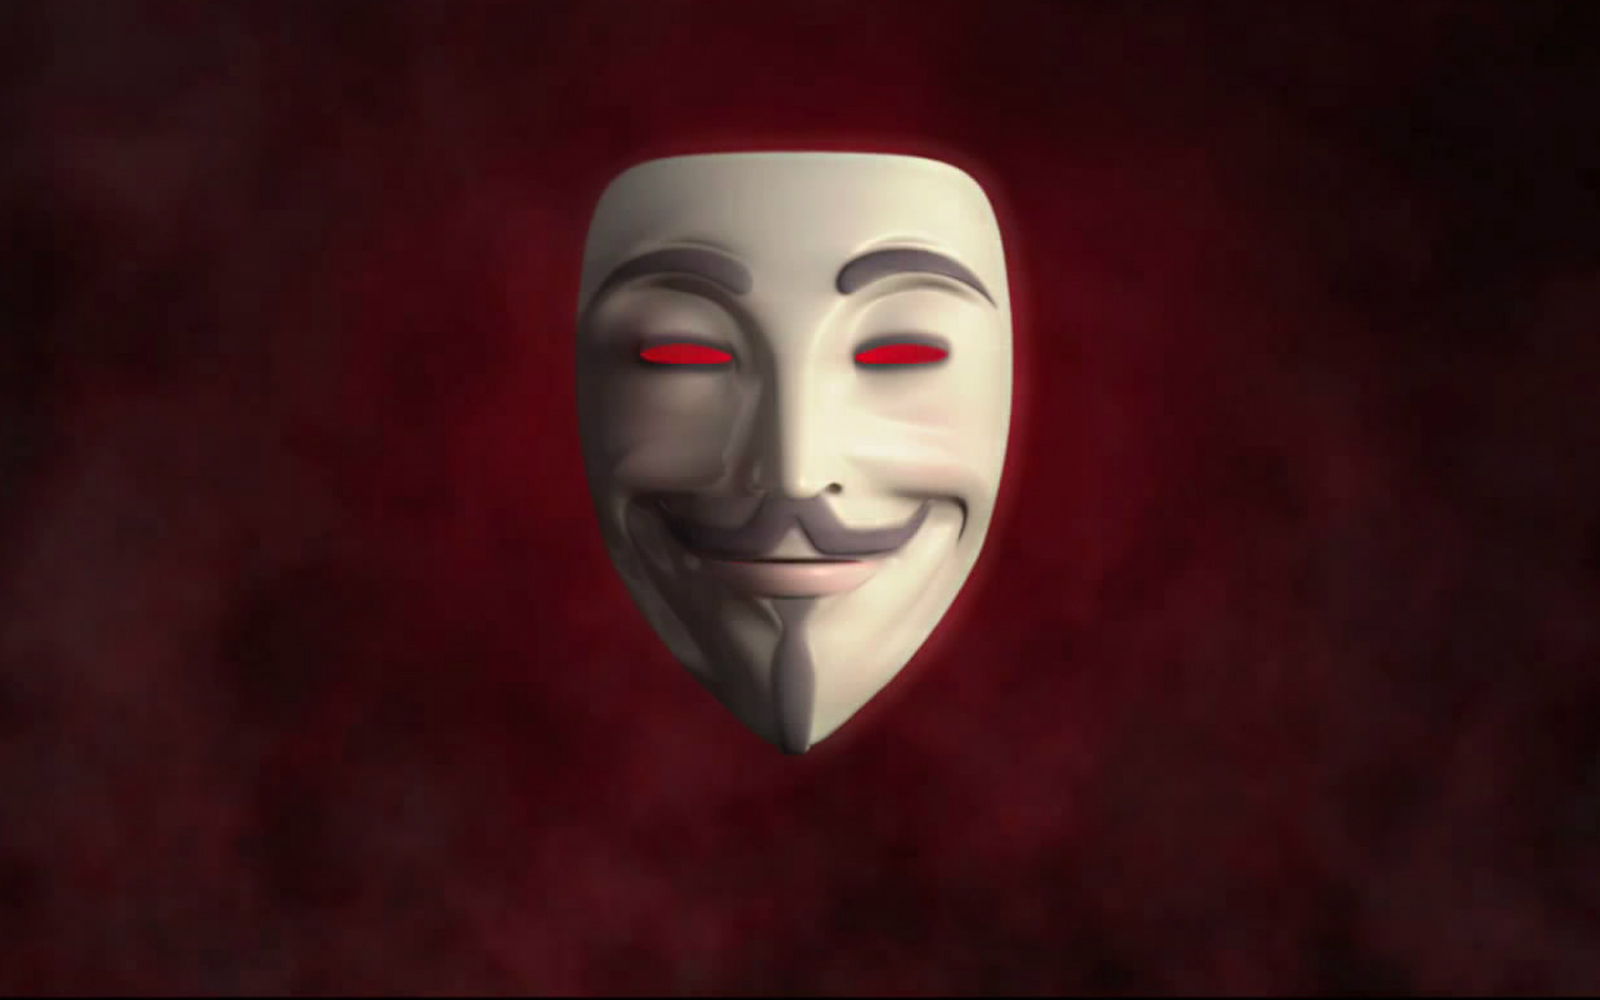 http://1.bp.blogspot.com/-9gwOIef-q_o/TlrL5WF0BlI/AAAAAAAAAuc/sTByc7TfQT8/s1600/Mask_guy_fawkes_v_for_vendetta_TV_wallpapers_www.Vvallpaper.net.jpg